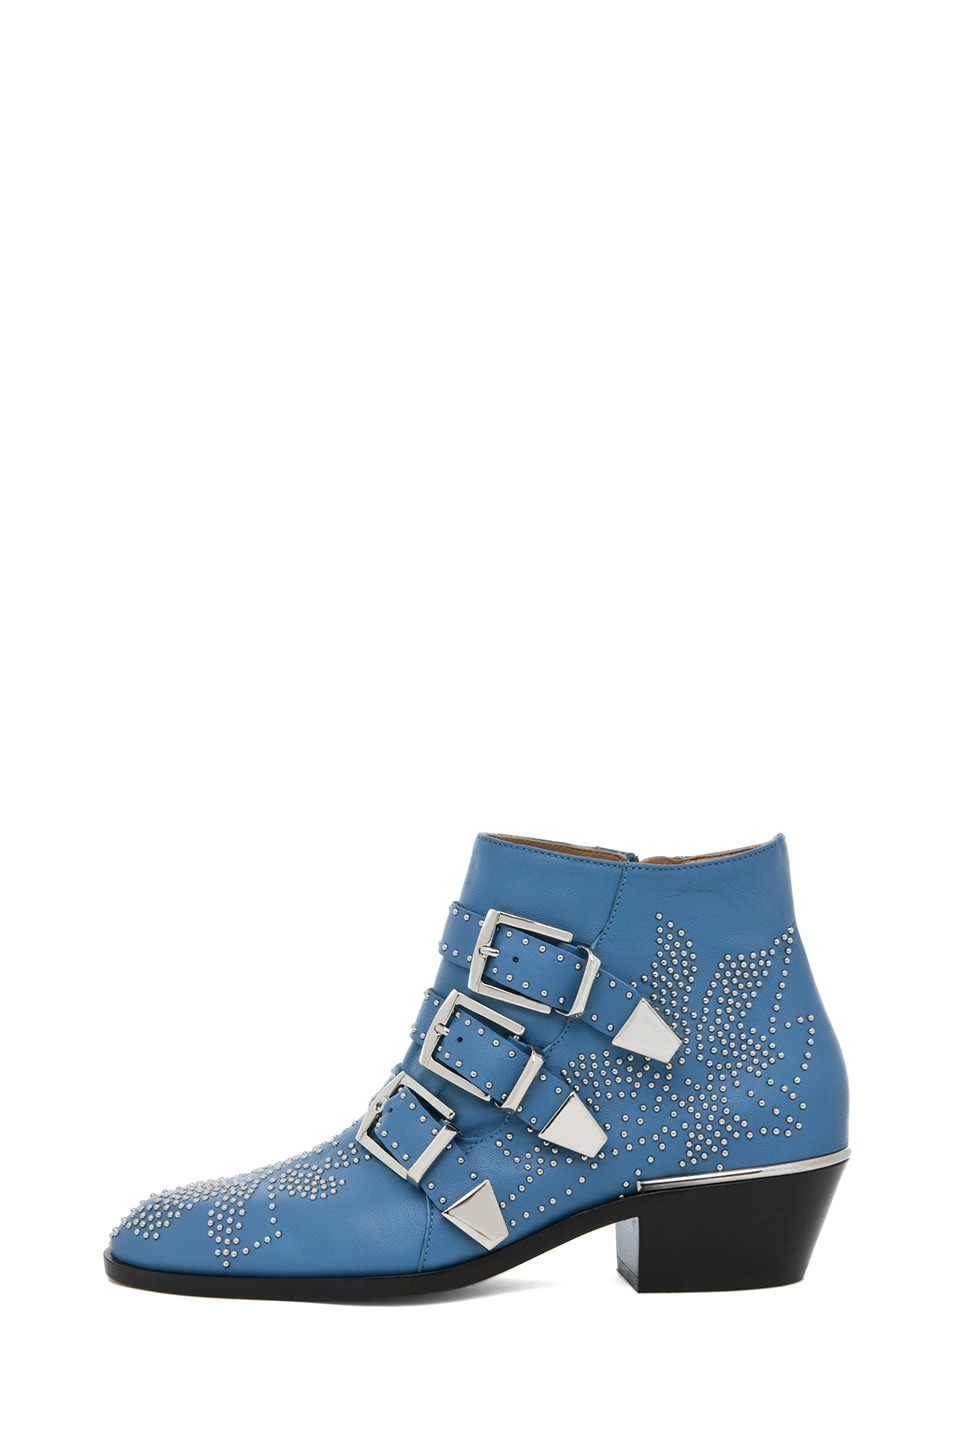 Image 1 of Chloe Susanna Studded Bootie in Blue